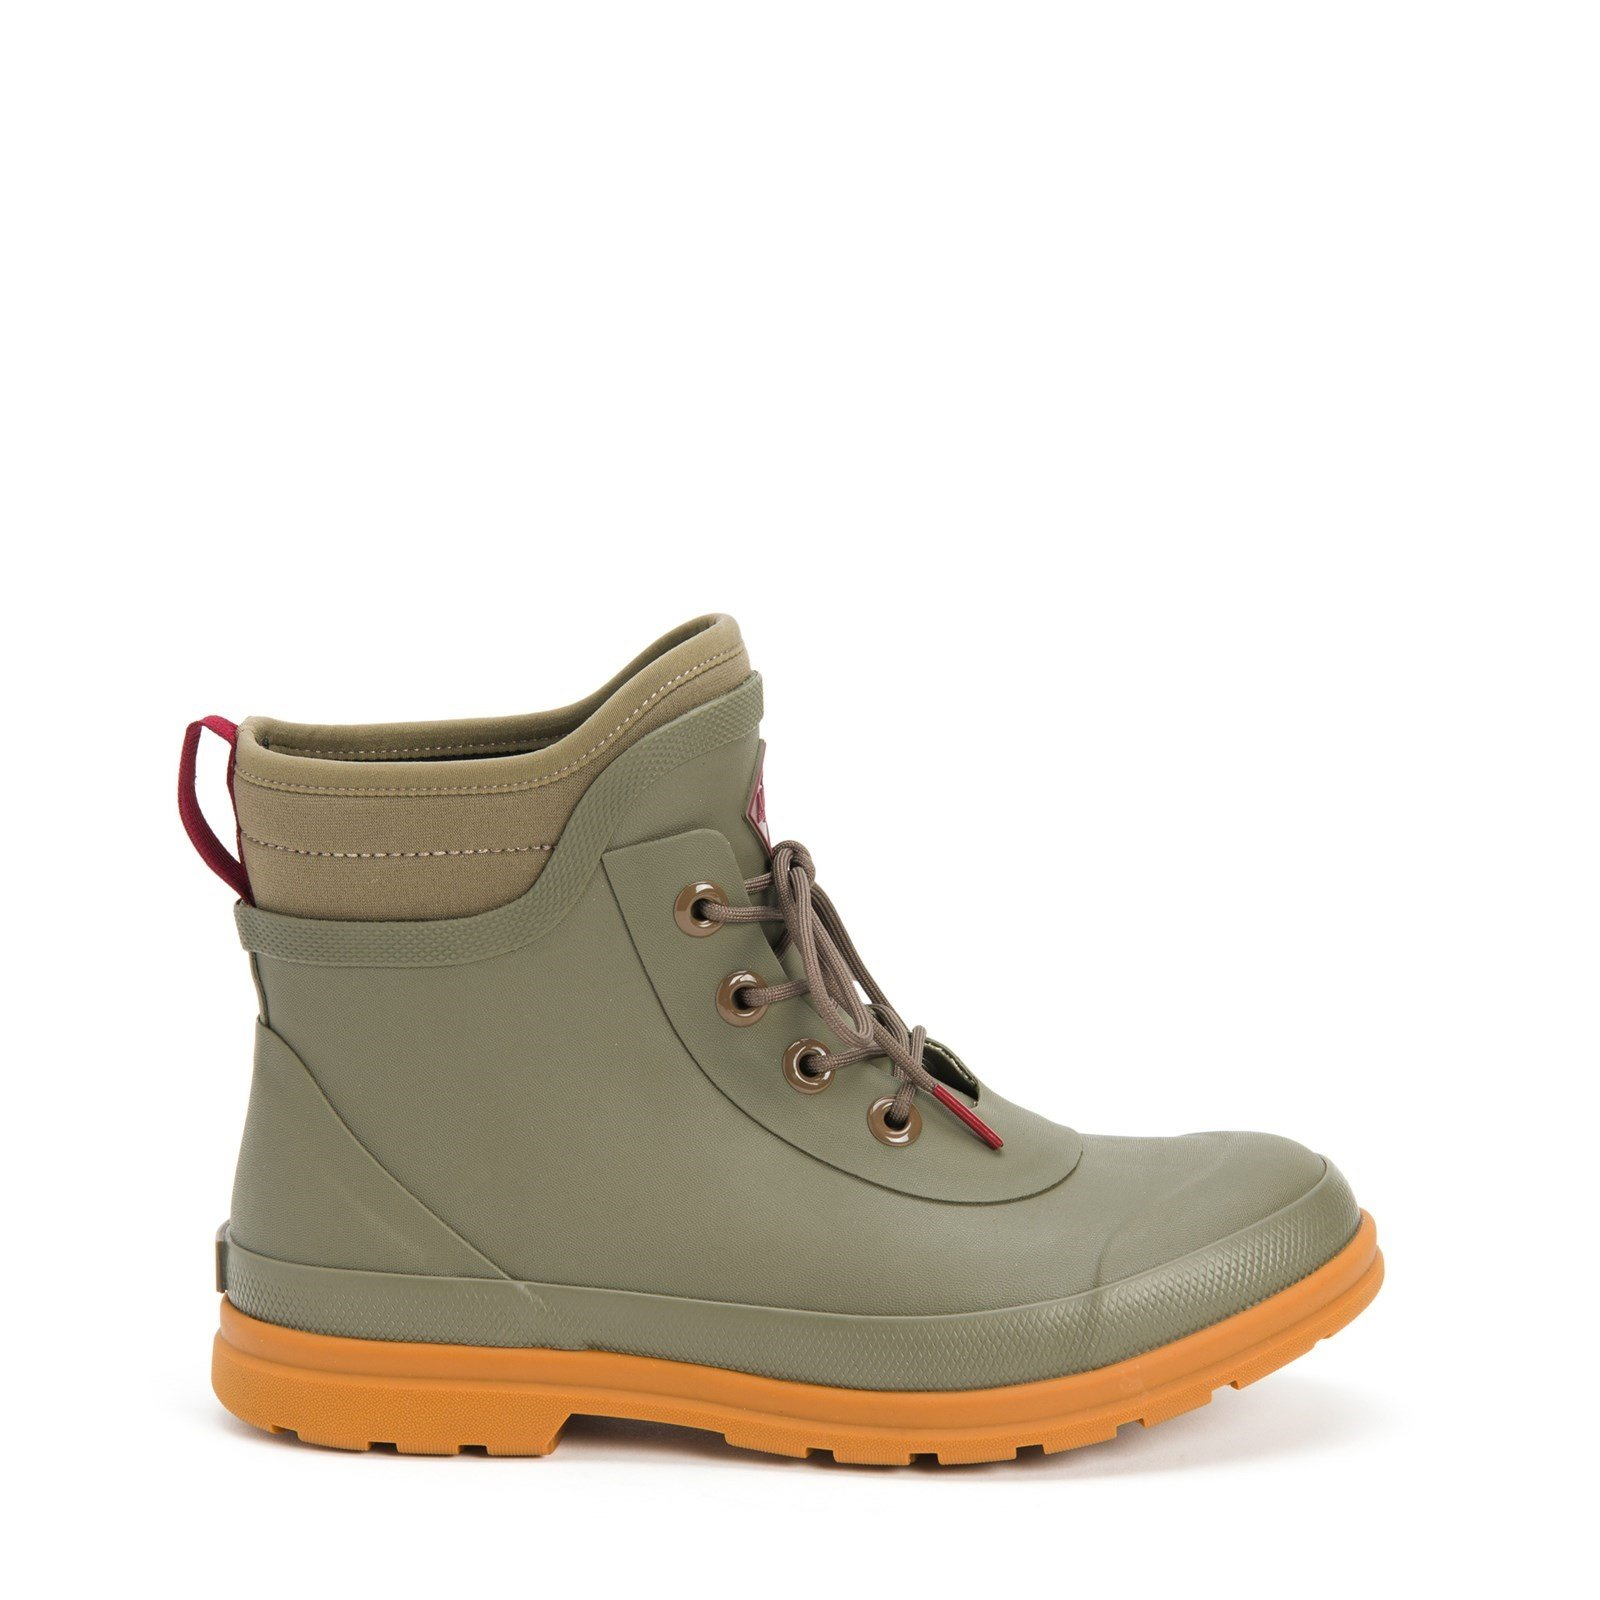 Muck Boots Women's Originals Lace Up Ankle Boot Various Colours 30079 - Taupe 4